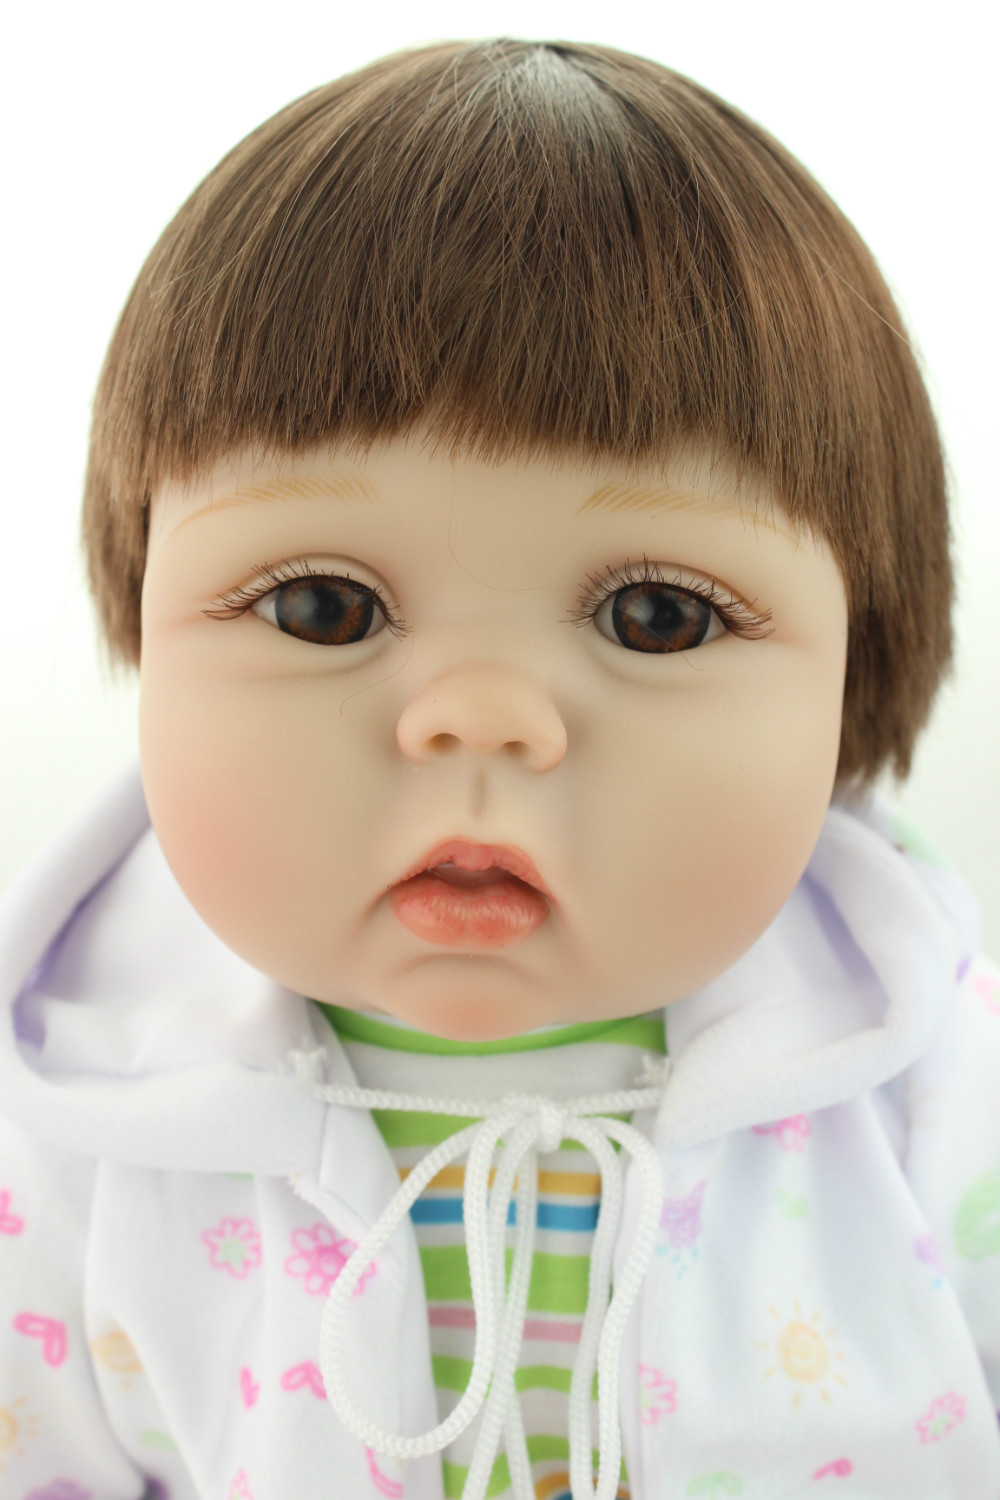 New born baby doll  lifelike reborn baby doll rooted human hair fashion doll Childen's Day  gift lovely gifts 2015 new design soft silicone reborn baby doll rooted human hair fashion doll christmas gift